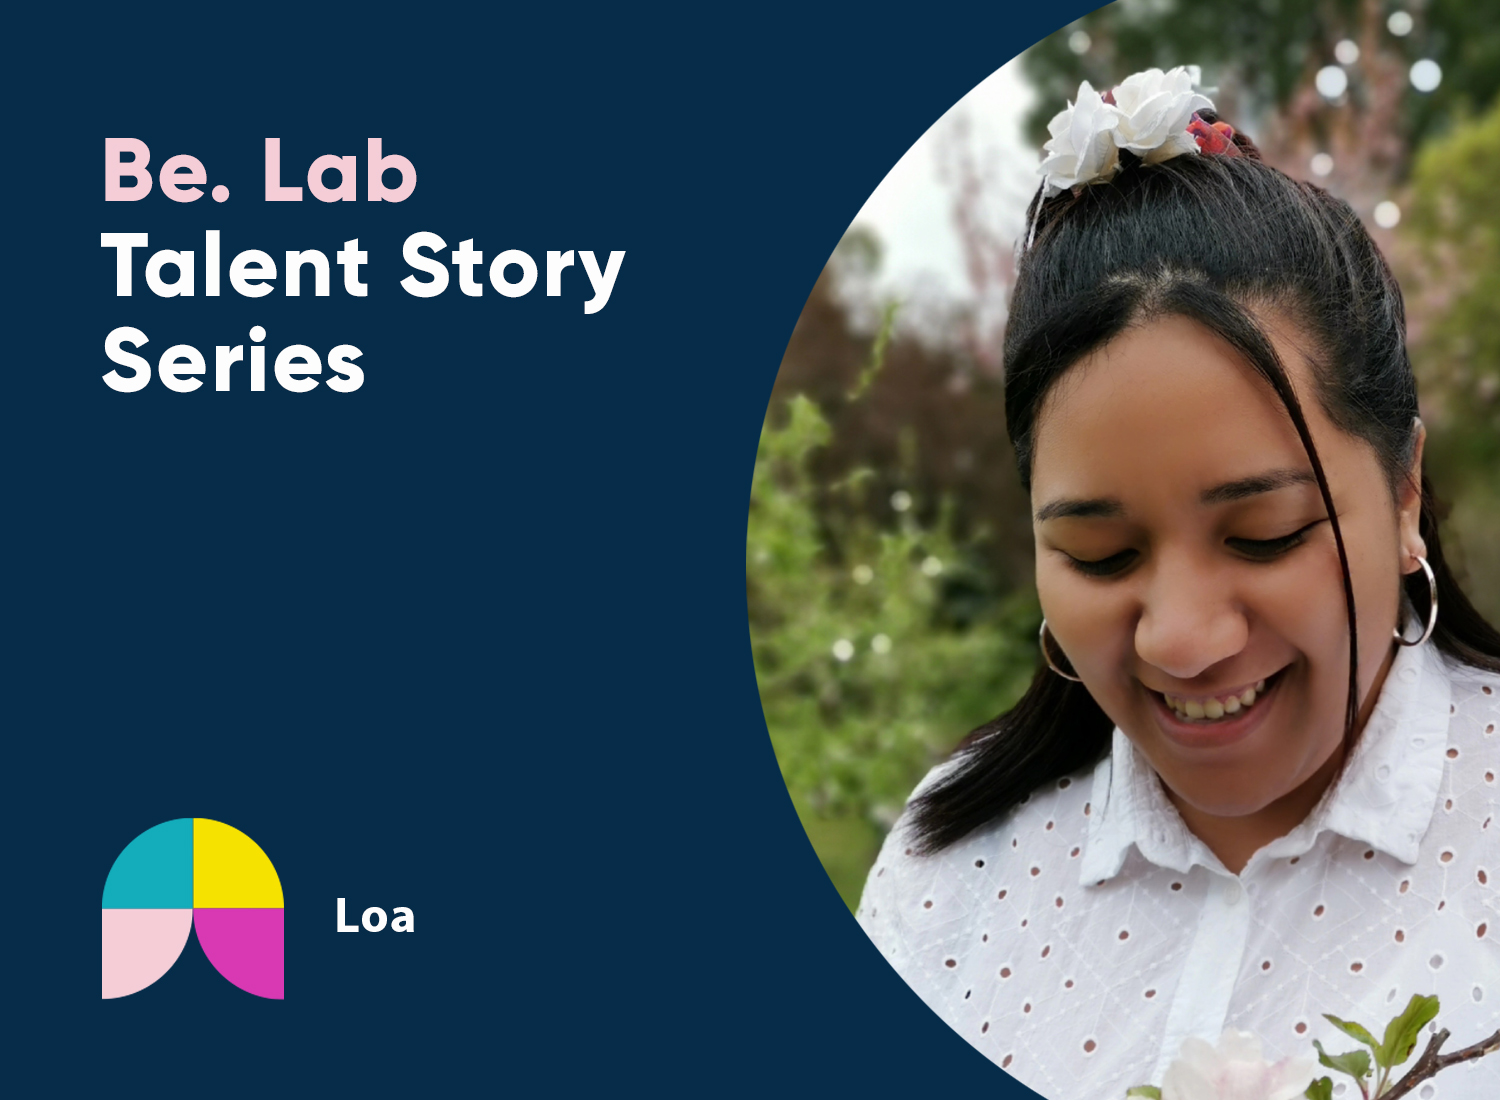 Loa looks down with a smile. Text reads Be. Lab Talent Story Series.